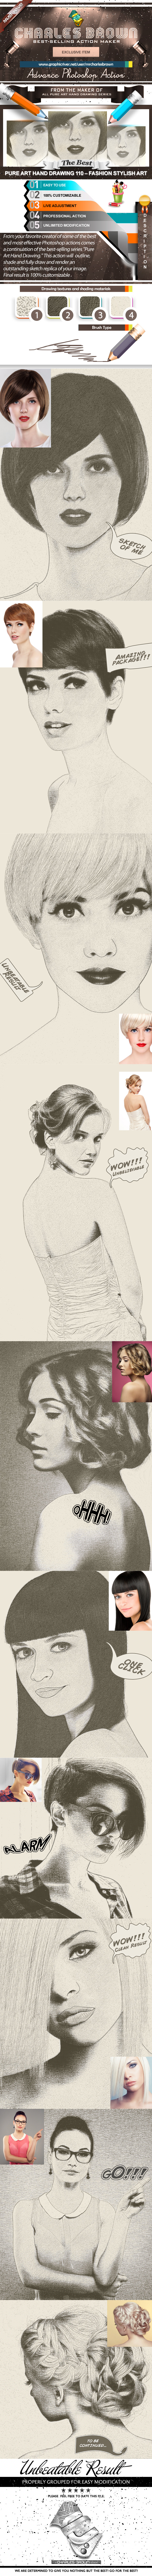 Pure Art Hand Drawing 110 – Fashion Stylish Art - Photo Effects Actions